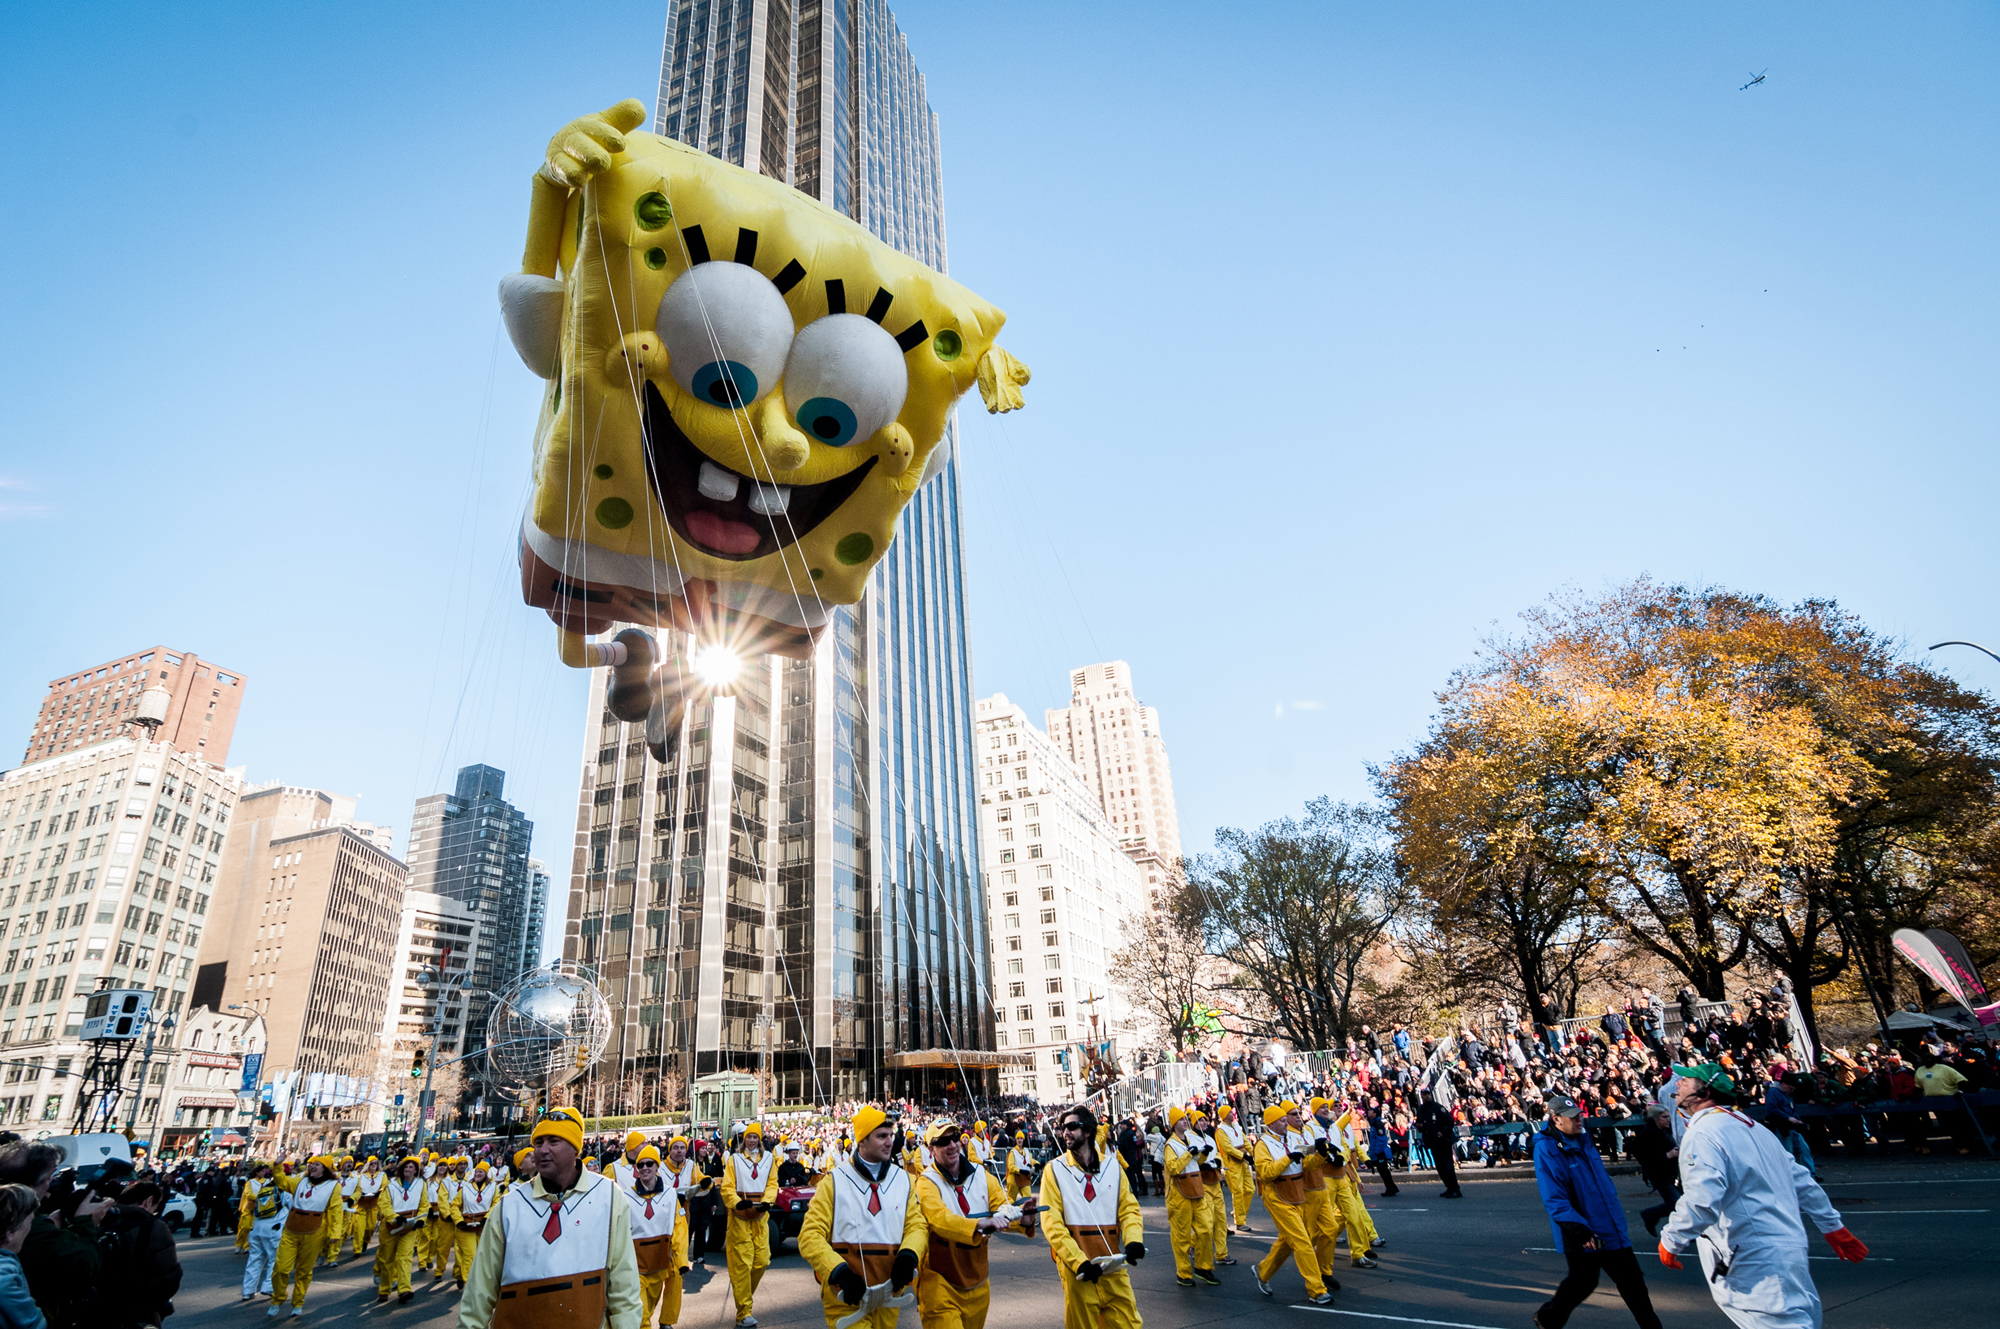 Photos: 2012 Macy's Thanksgiving Day Parade (2012)